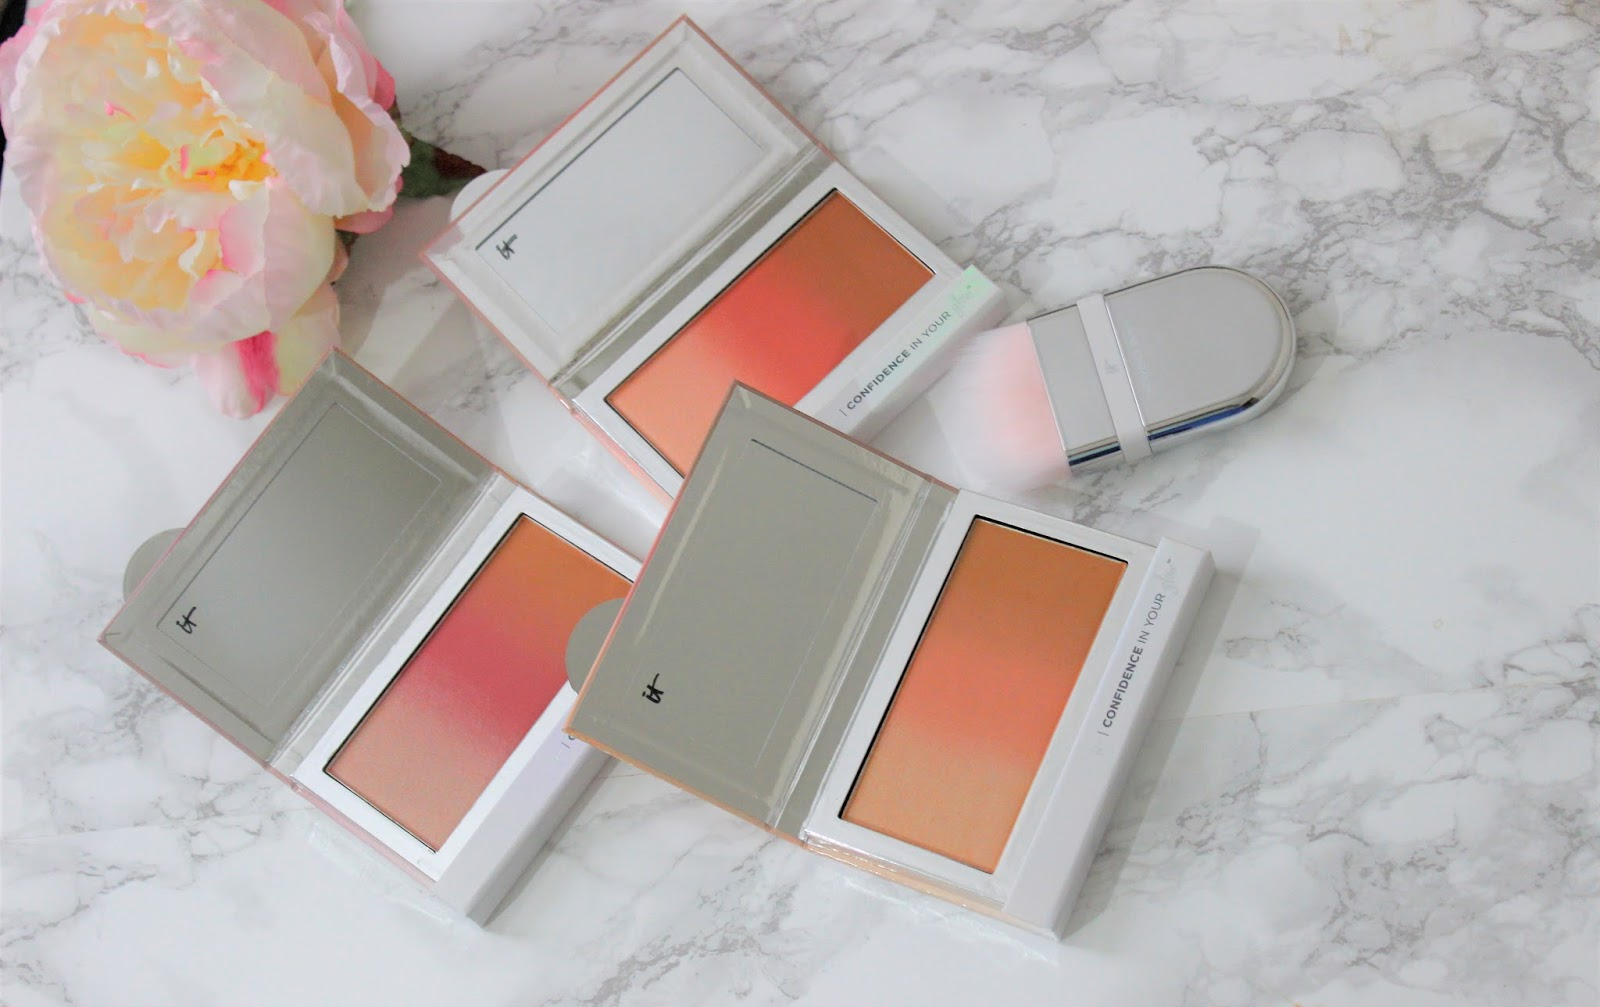 It Cosmetics Confidence in your glow blush and bronzer